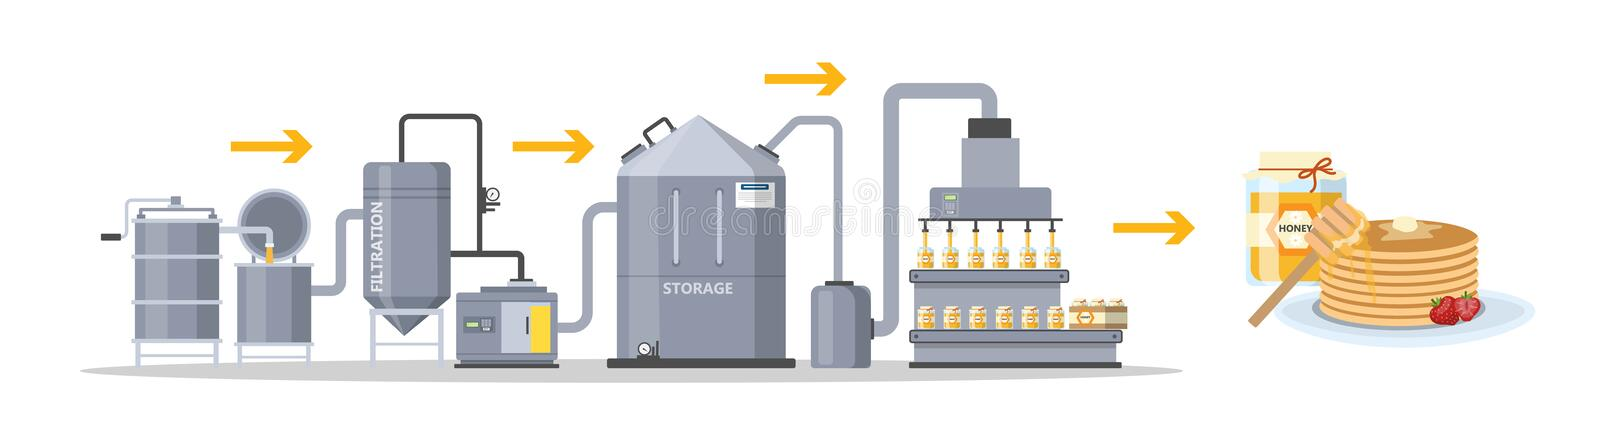 Honey production process. Filtration and storage of product stock illustration